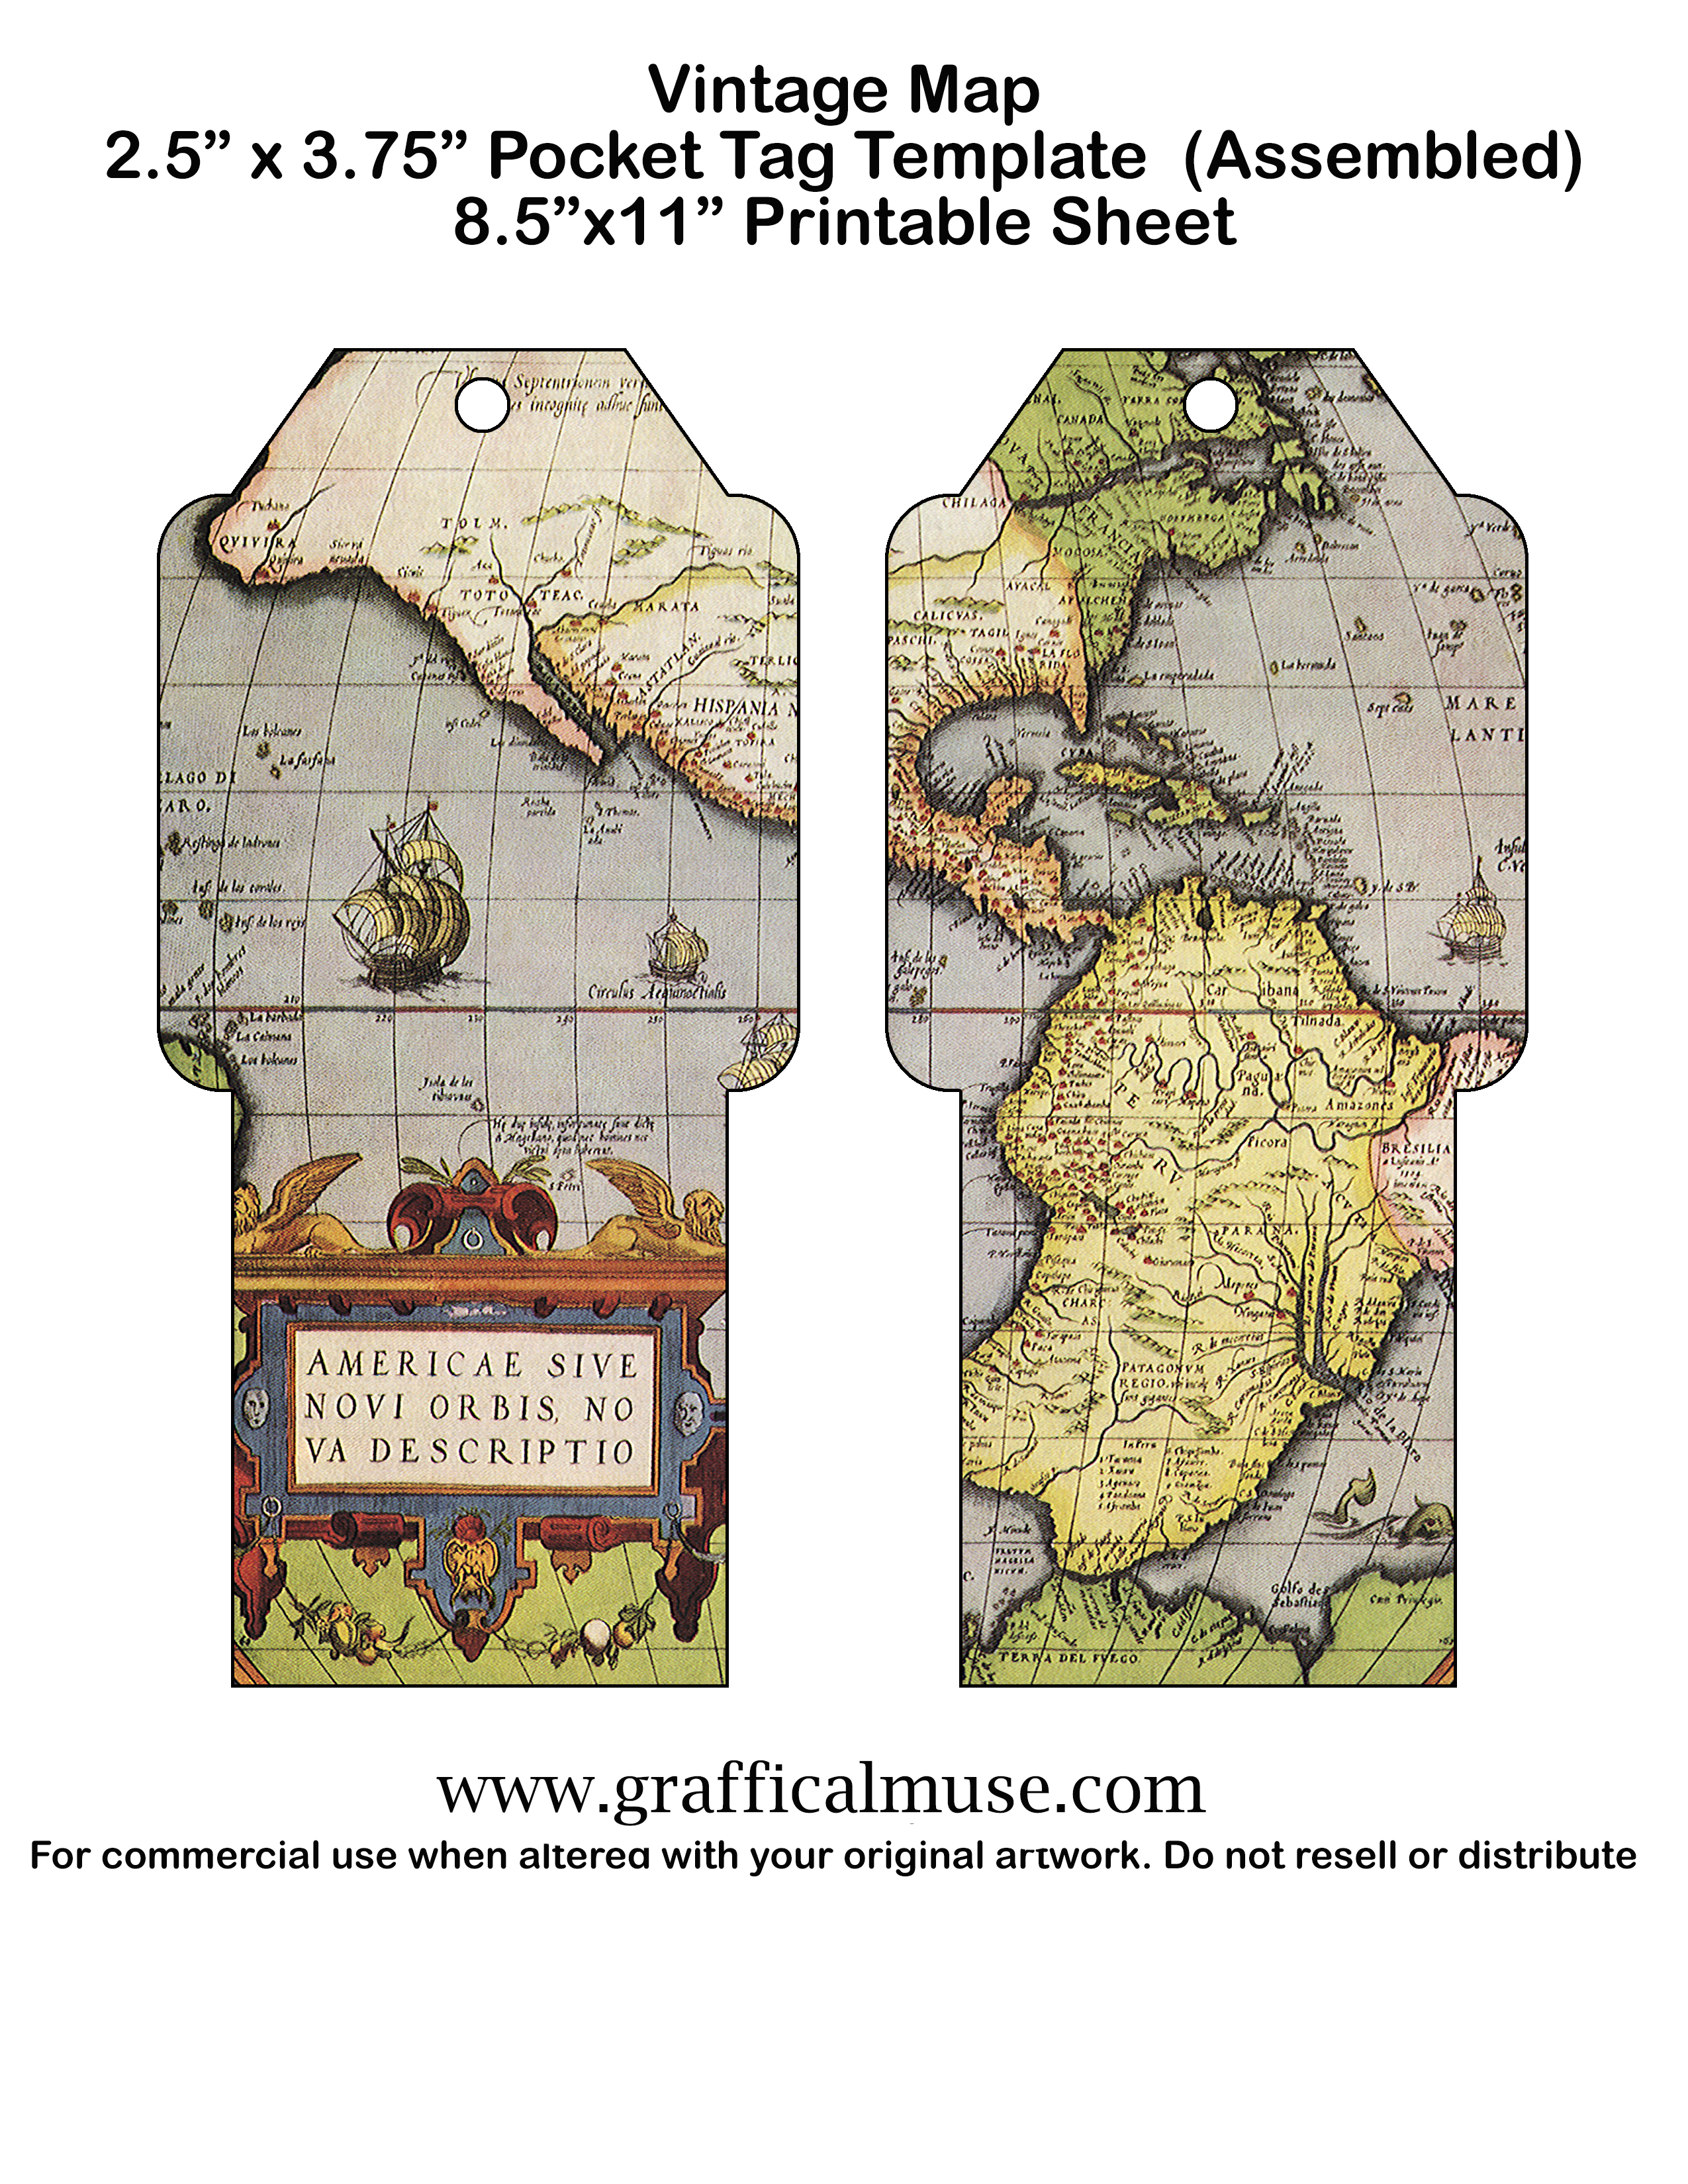 photograph relating to Free Printable Vintage Maps named No cost Printable Pocket Tags - Traditional Maps - The Graffical Muse